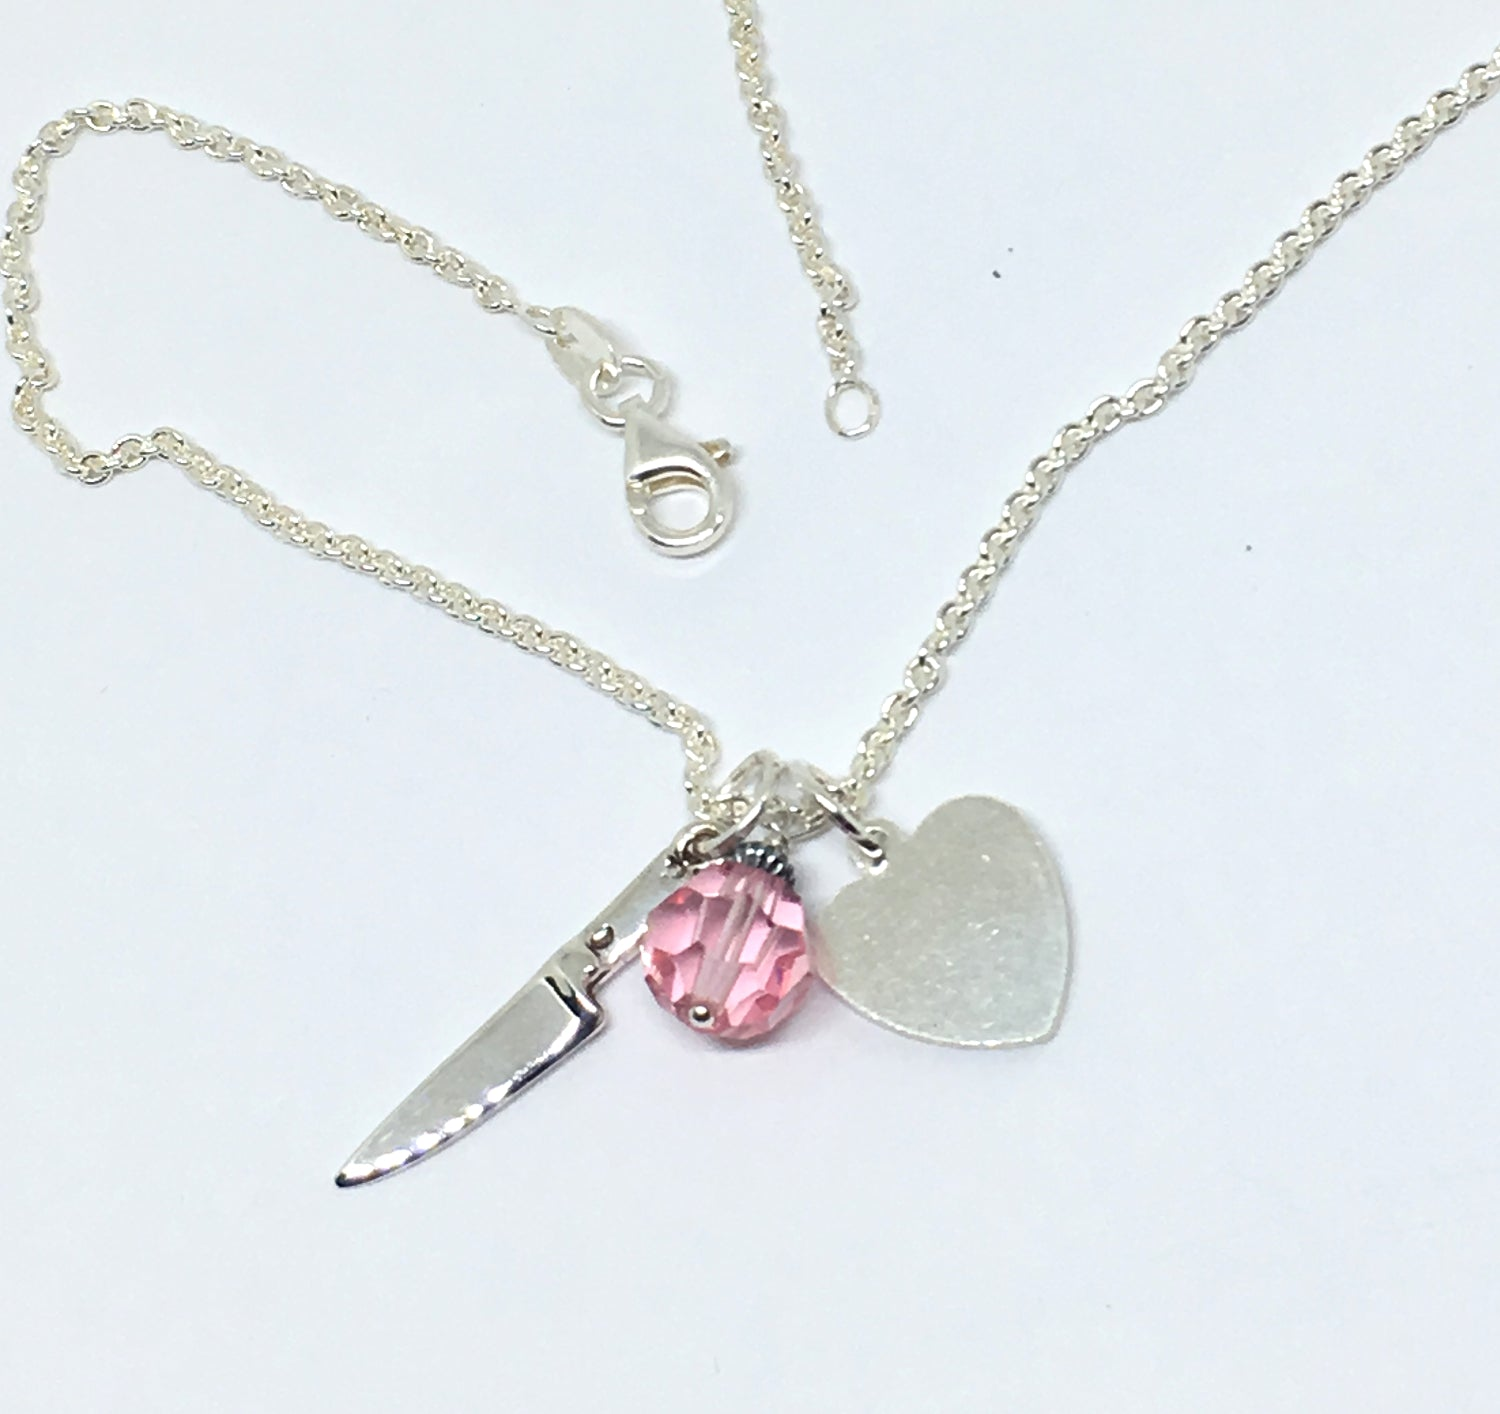 Personalized Chef Knife Cluster Necklace with Initials and Pink Swarovski Crystal